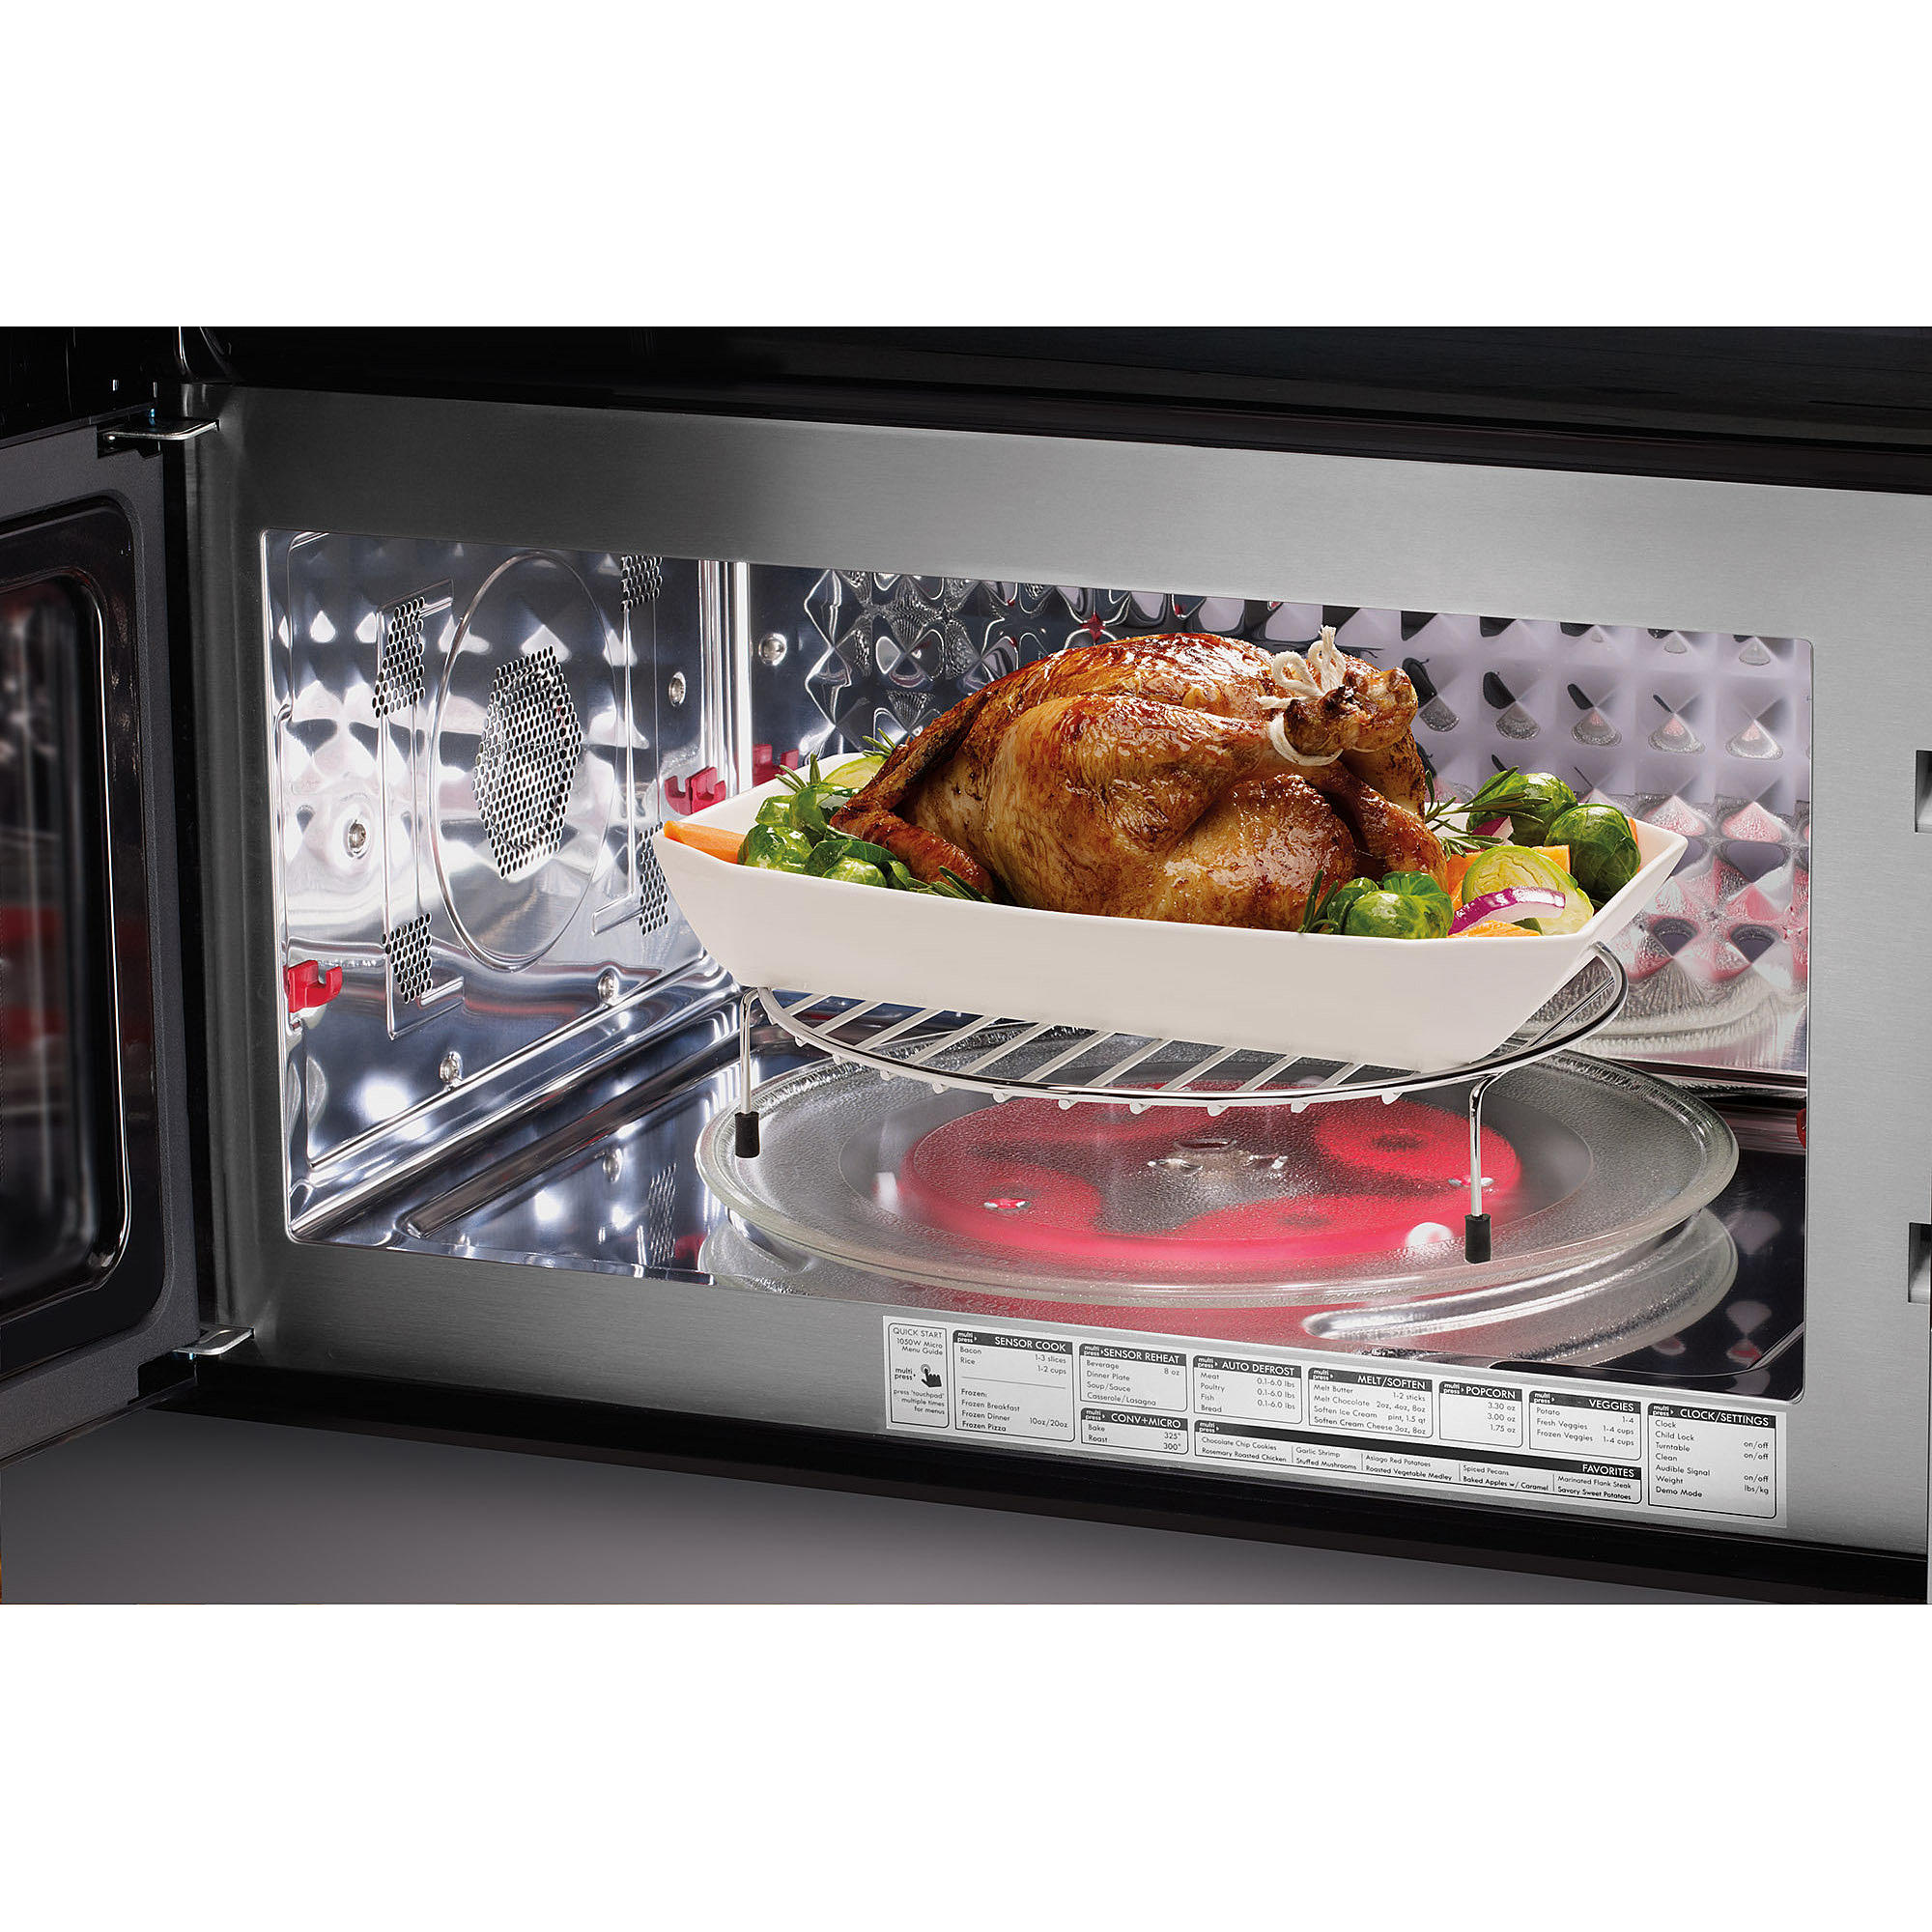 Rack For Microwave Convection Oven: Kenmore Elite 80373 1.8 Cu. Ft. Over-the-Range Convection